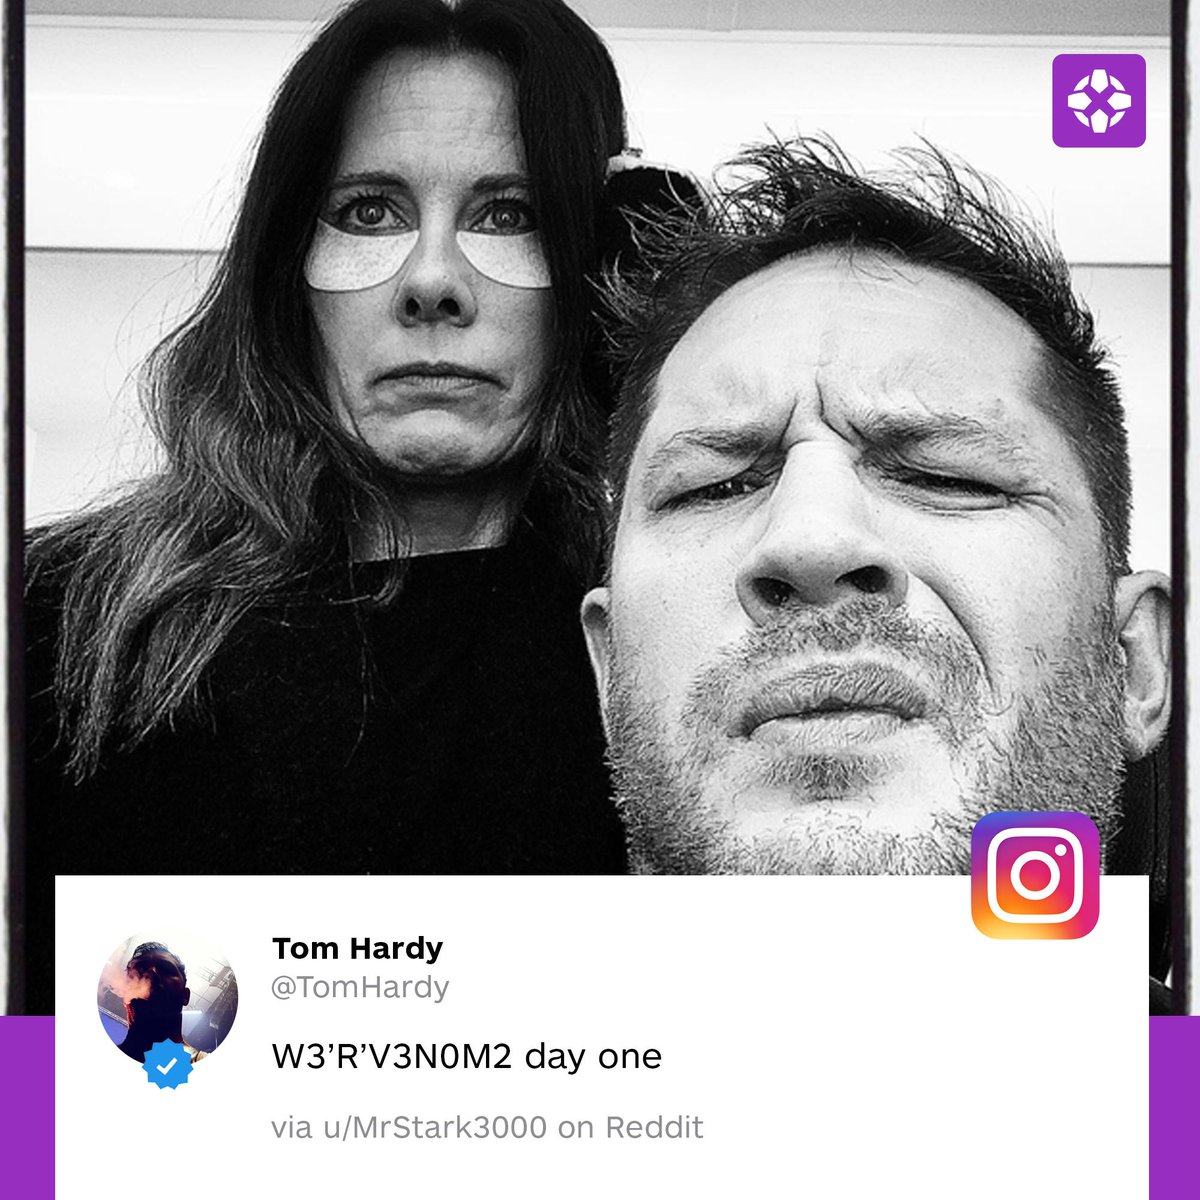 Ign On Twitter Tom Hardy Revealed Venom 2 Started Production Through An Instagram Post That Was Quickly Taken Down